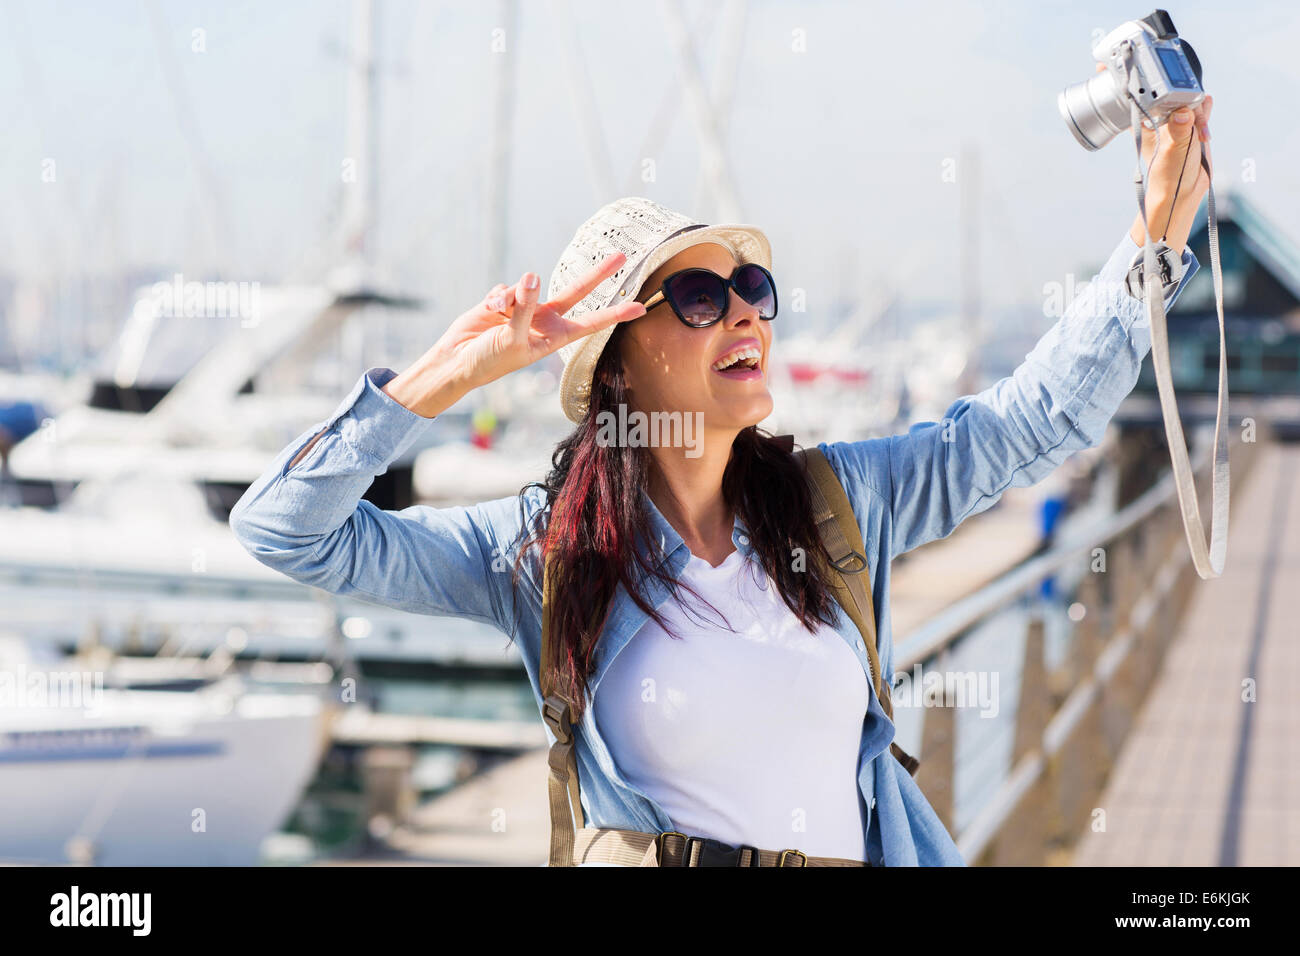 young female traveller taking a selfie by the harbor - Stock Image